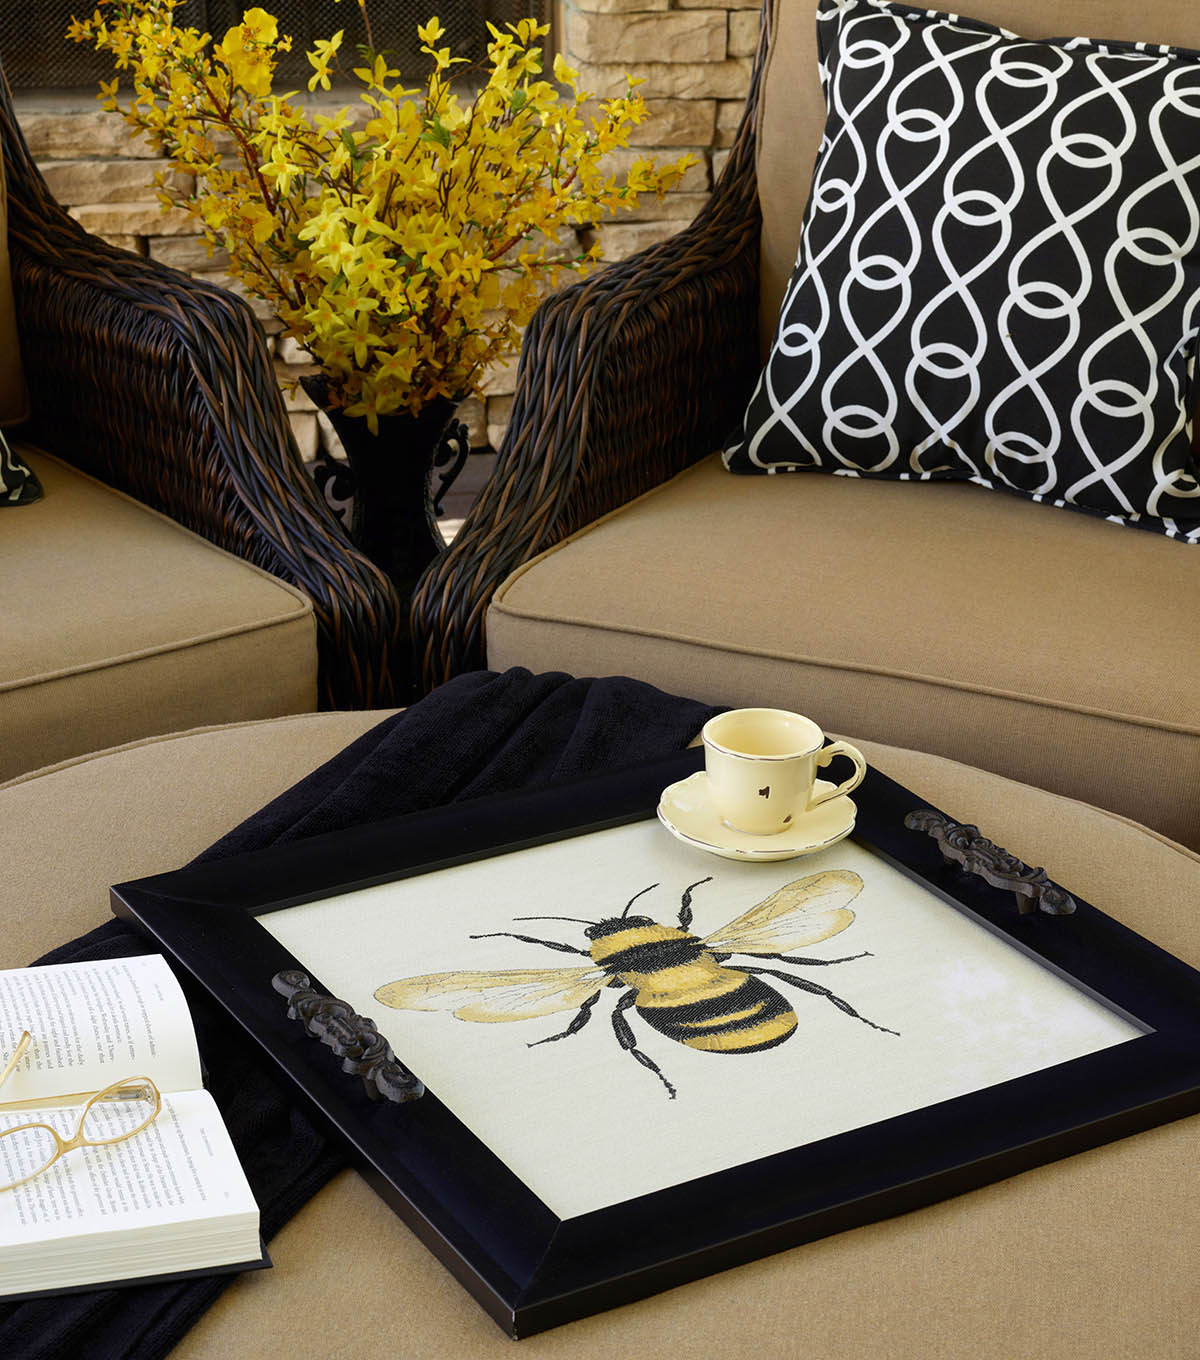 How To Make A Square By Design Decorative Tray Joann